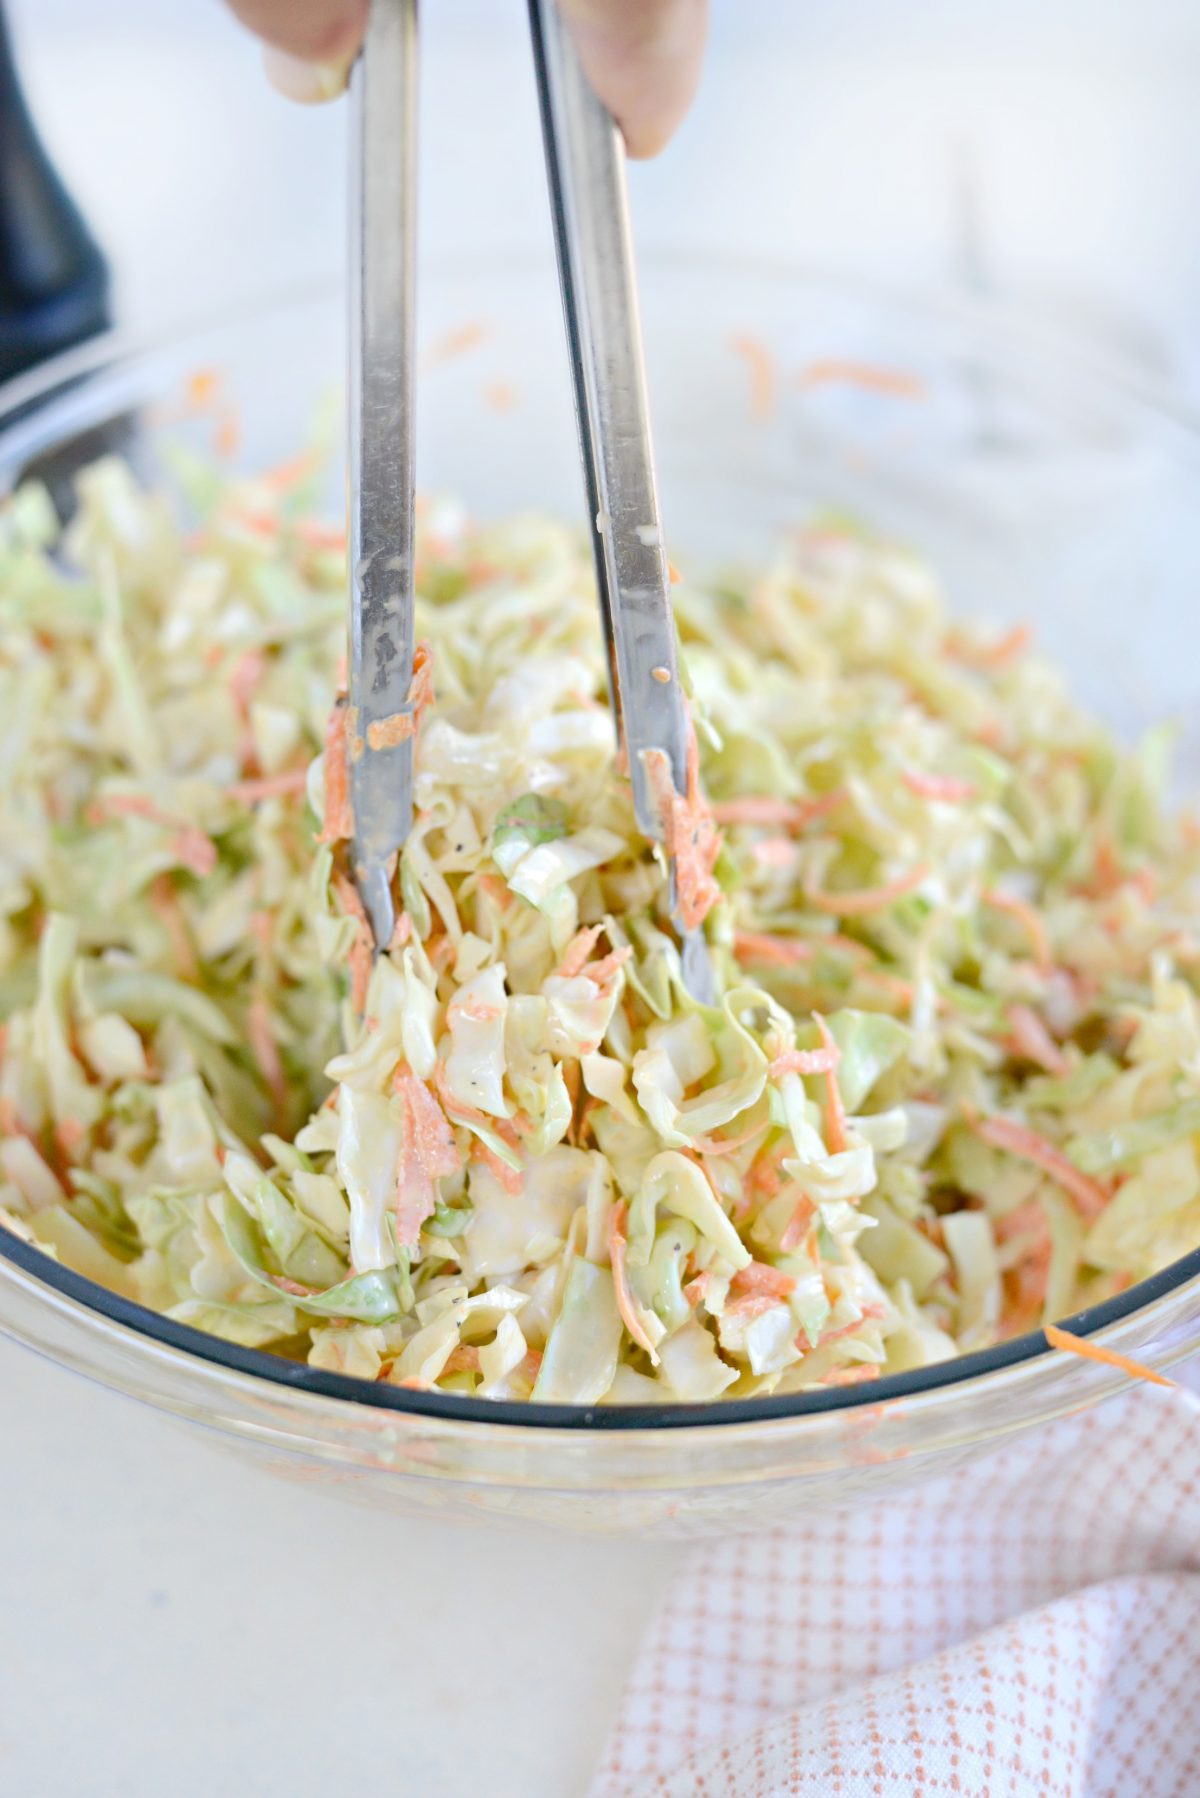 Classic Coleslaw Recipe with Homemade Dressing l SimplyScratch.com (10)